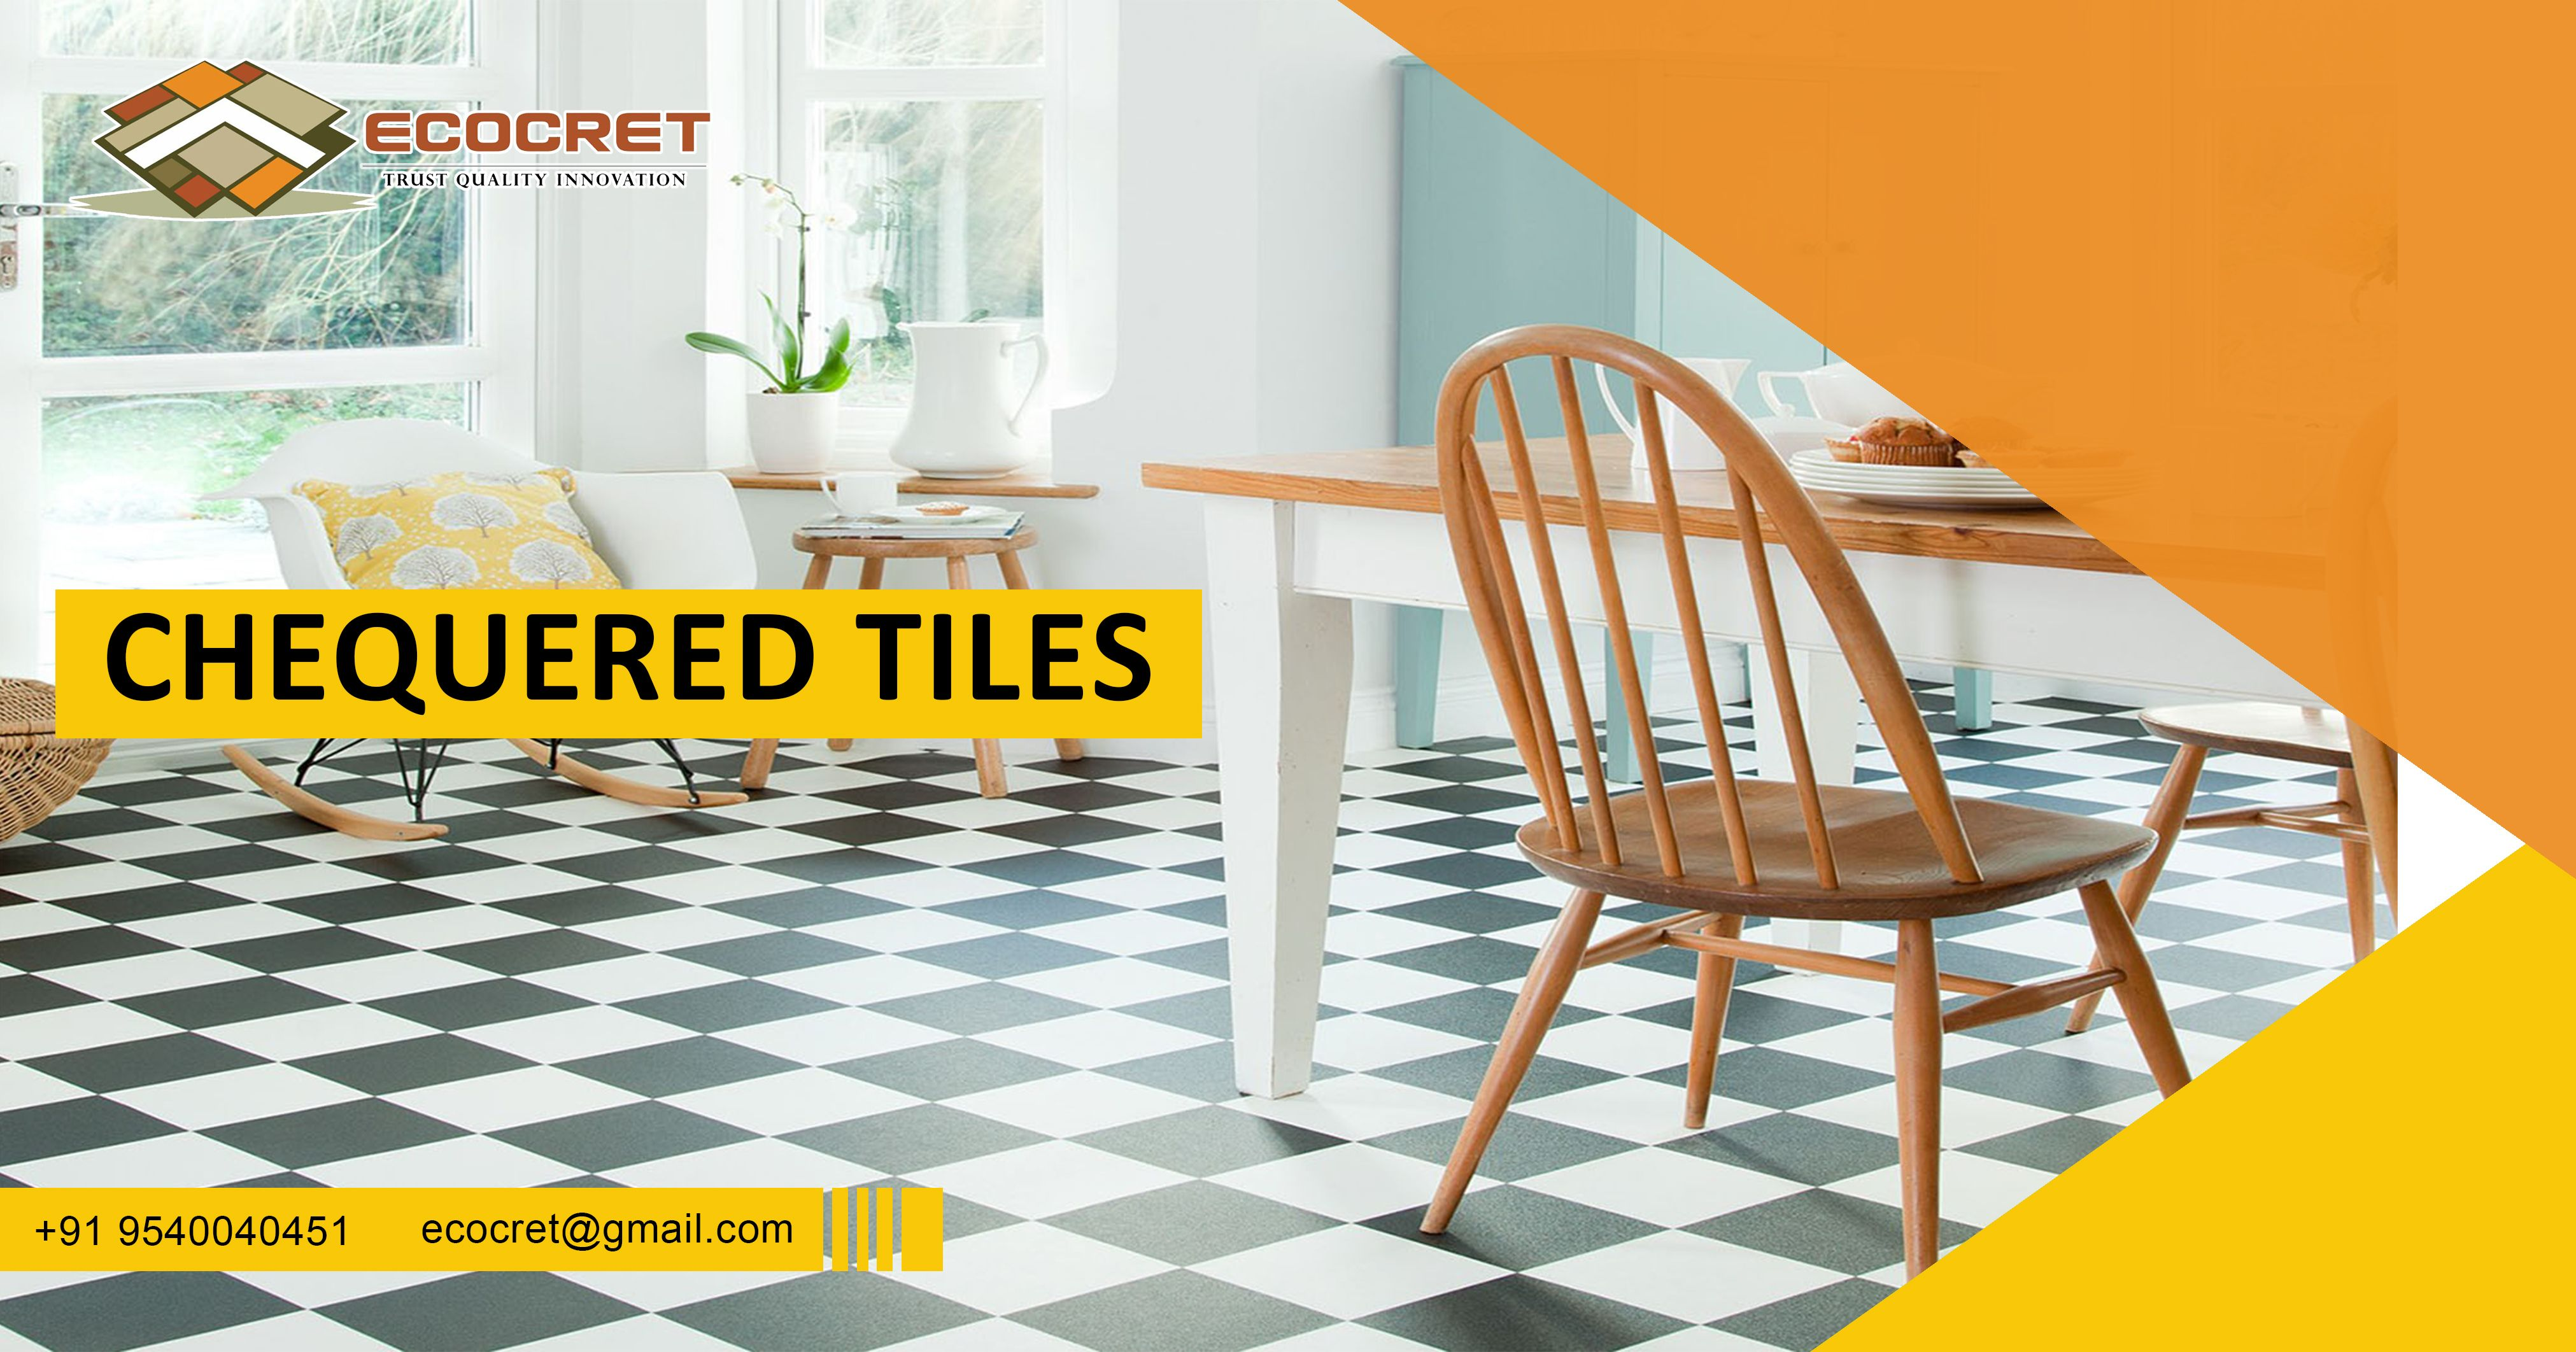 Ecocret Is The Largest Manufacturer And Suppliers Of Chequered Tiles In Delhi NCR Chequeredtile